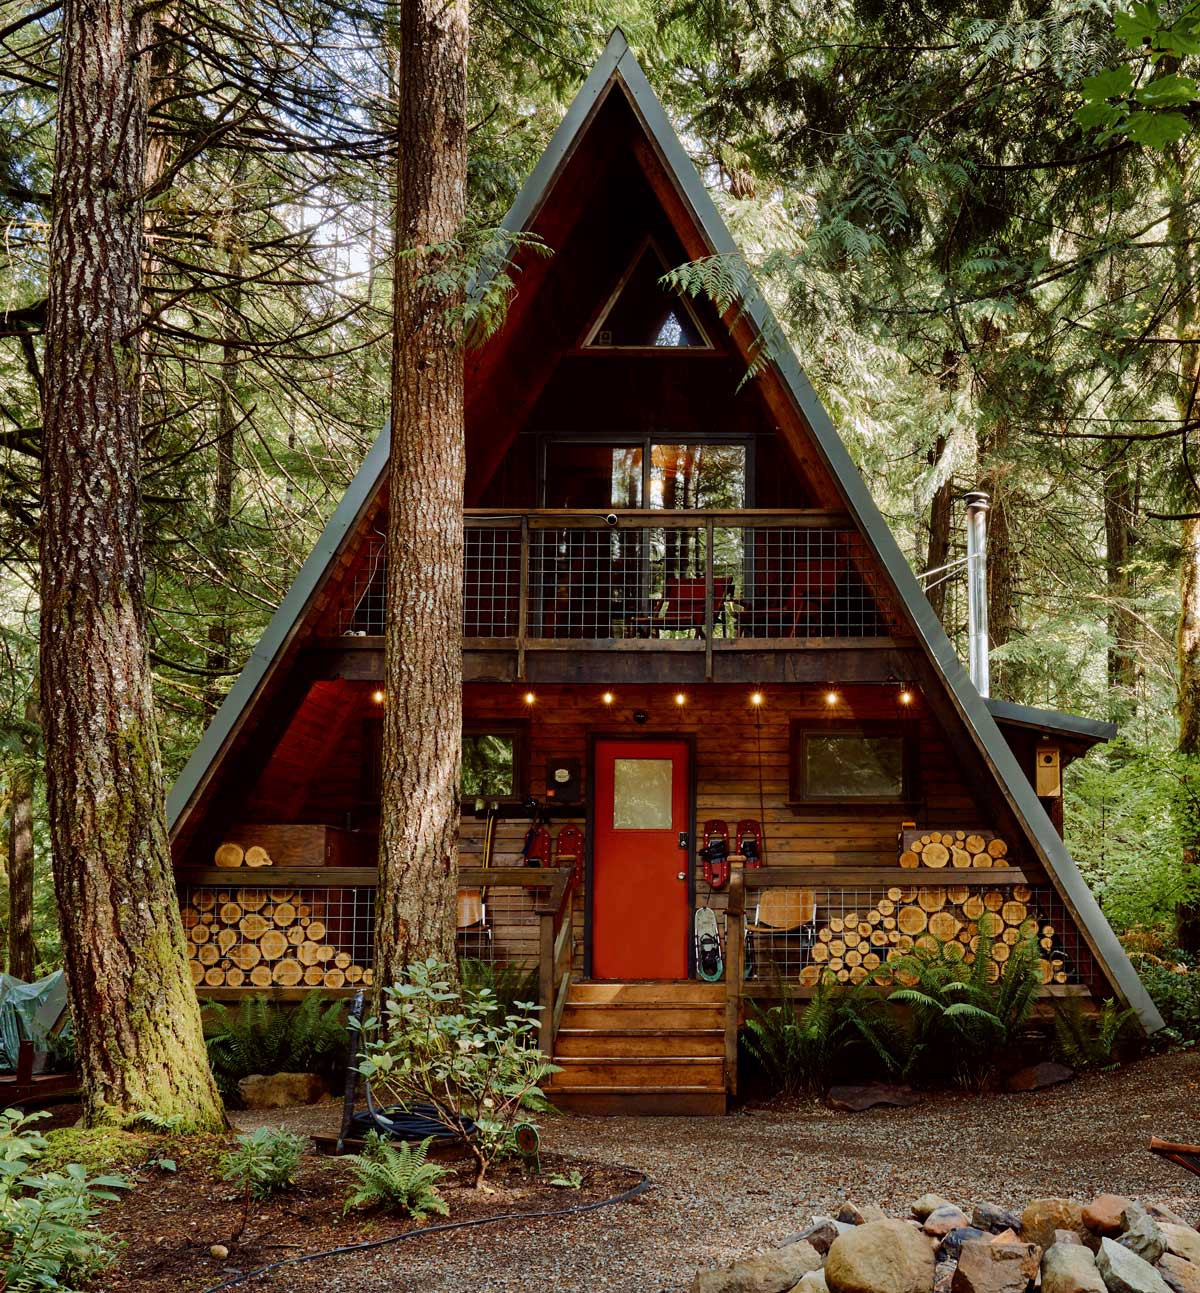 An A-frame house surrounded by pine trees in Washington state.